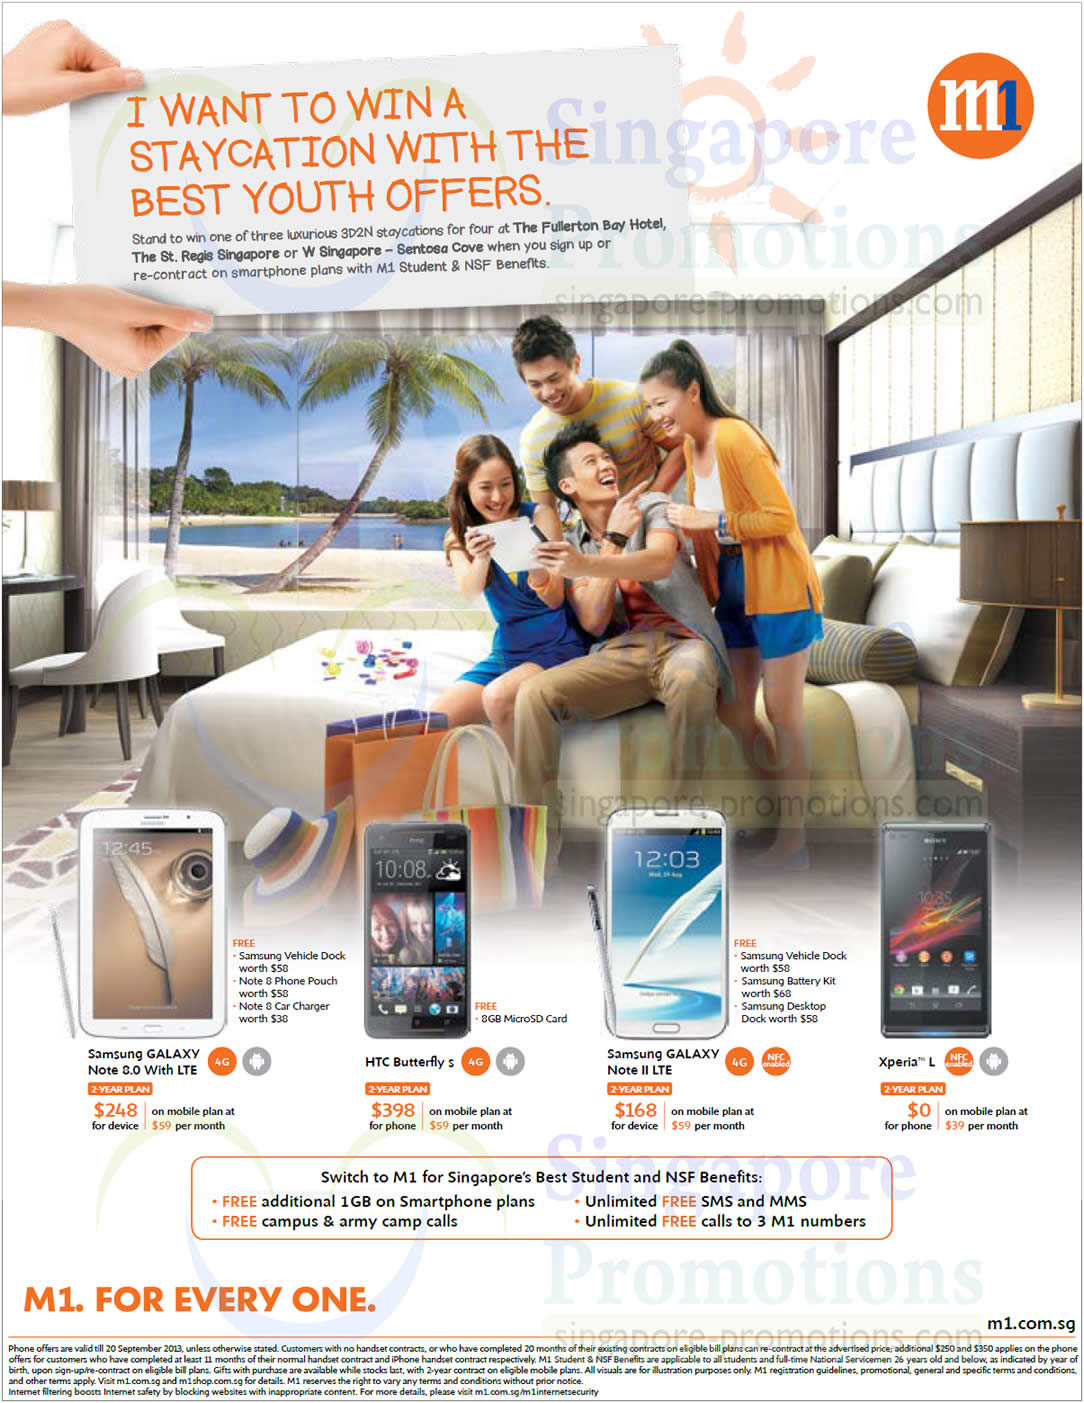 Samsung Galaxy Note 8.0, Samsung Galaxy Note II LTE, HTC Butterfly S, Sony Xperia L